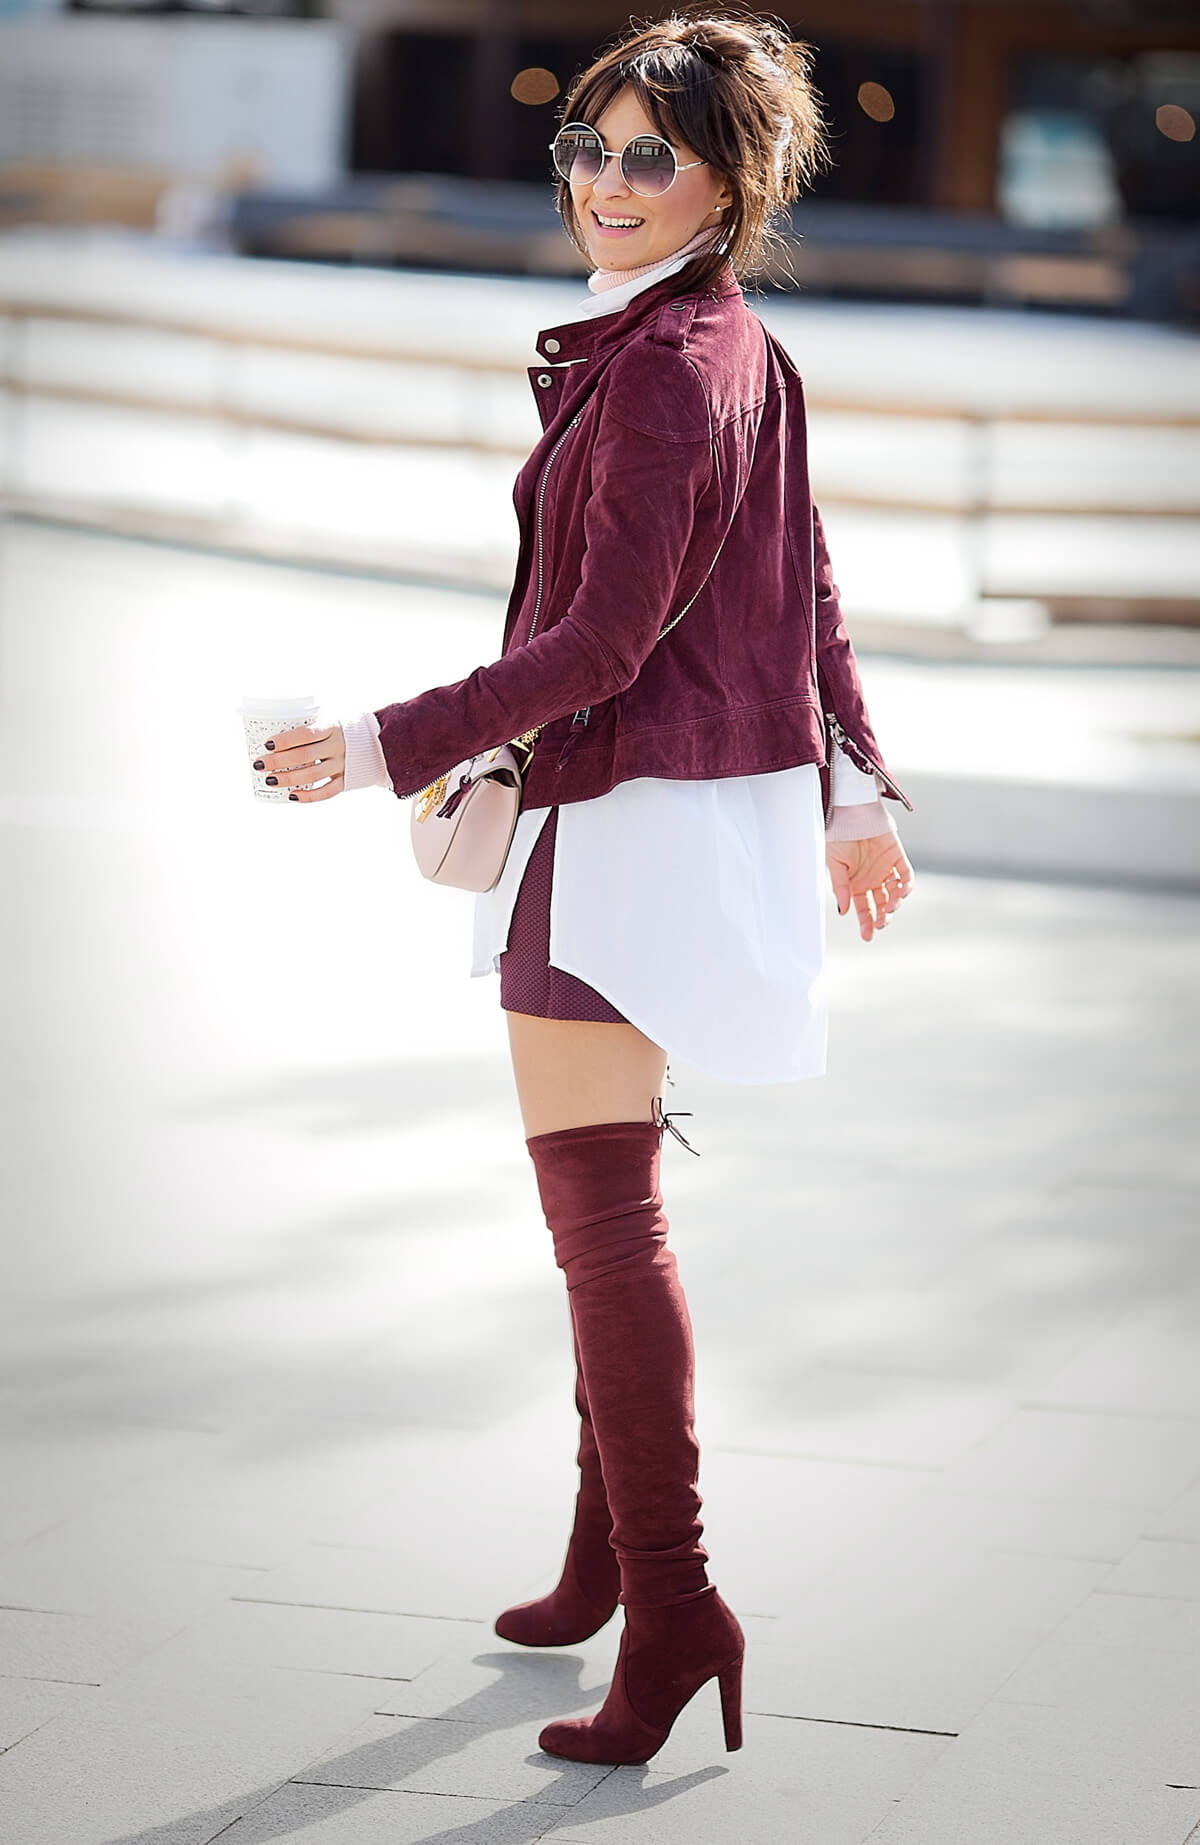 stuart+weitzman+over+the+knee+boots-outfit